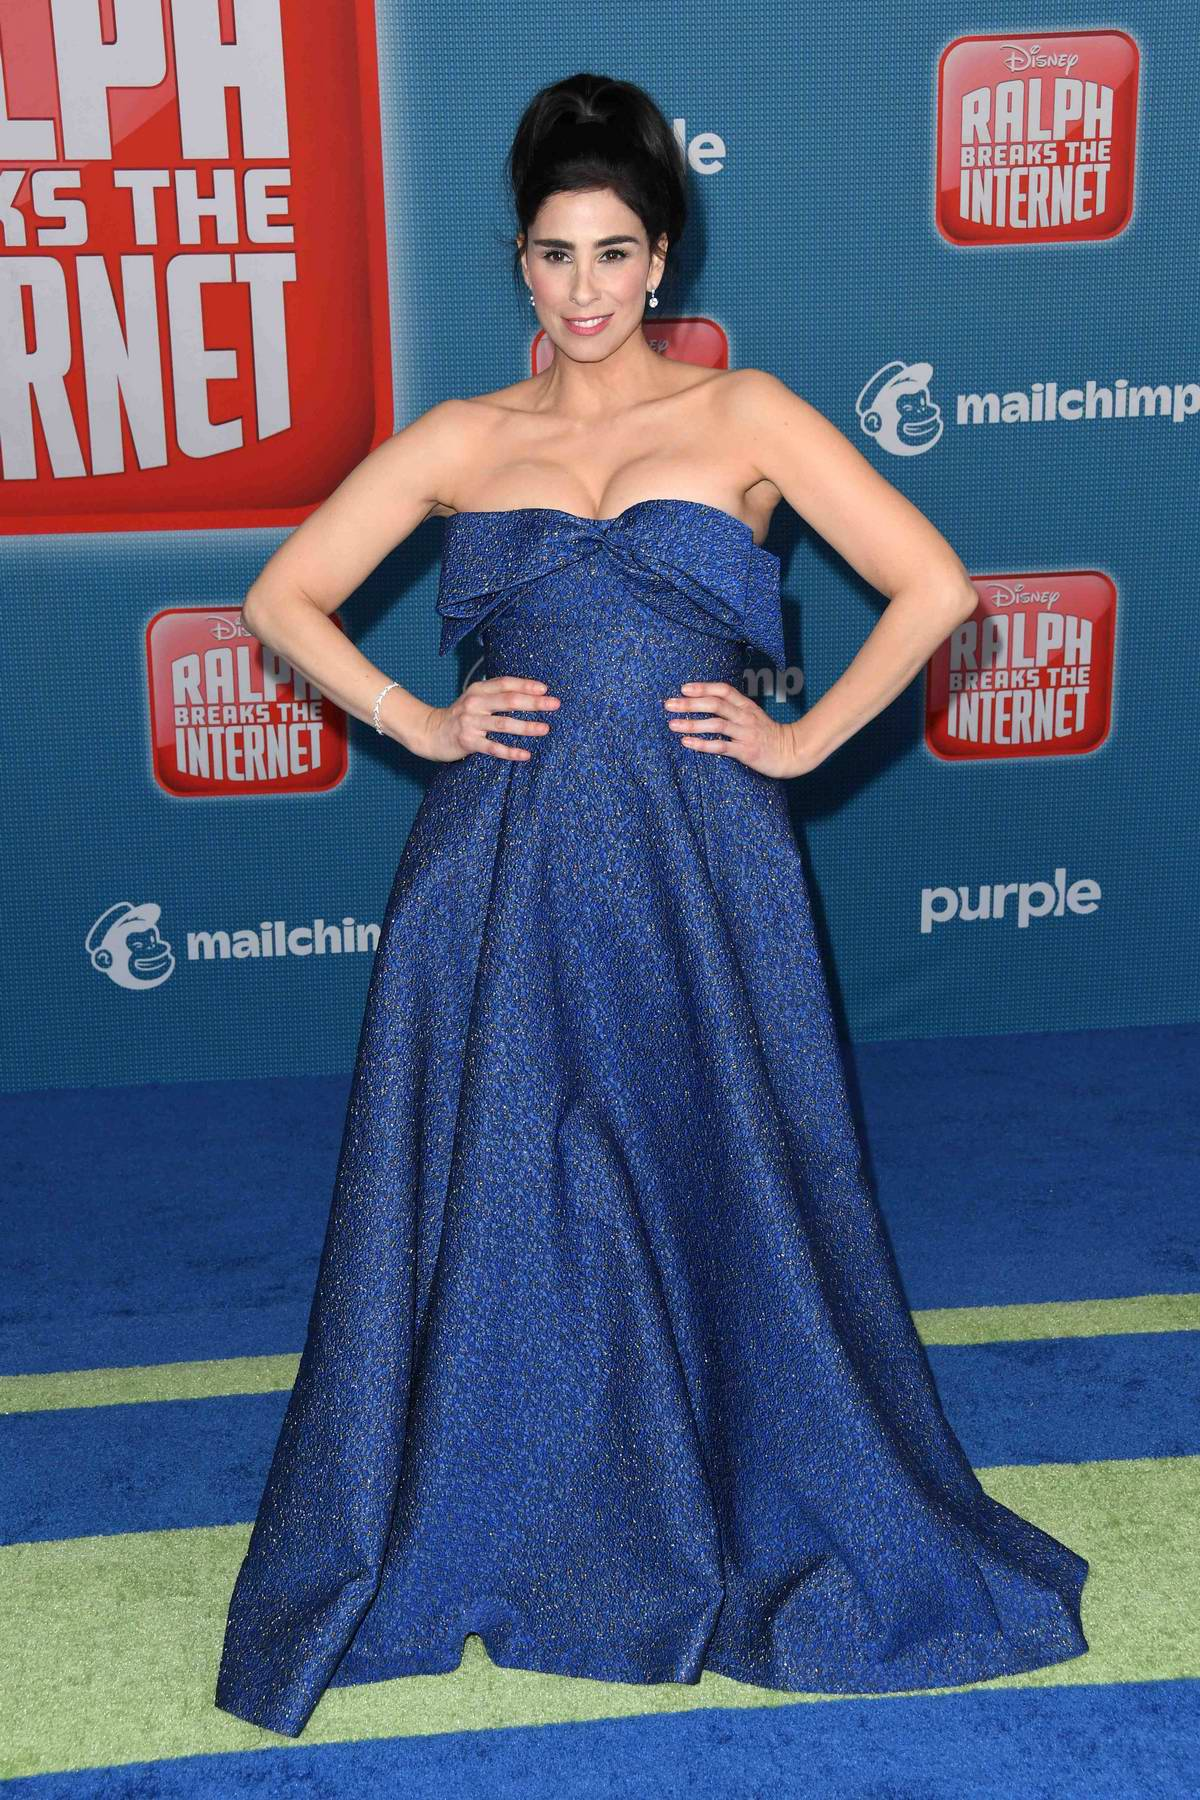 Sarah Silverman attends the premiere of 'Ralph Breaks The Internet' in Los Angeles